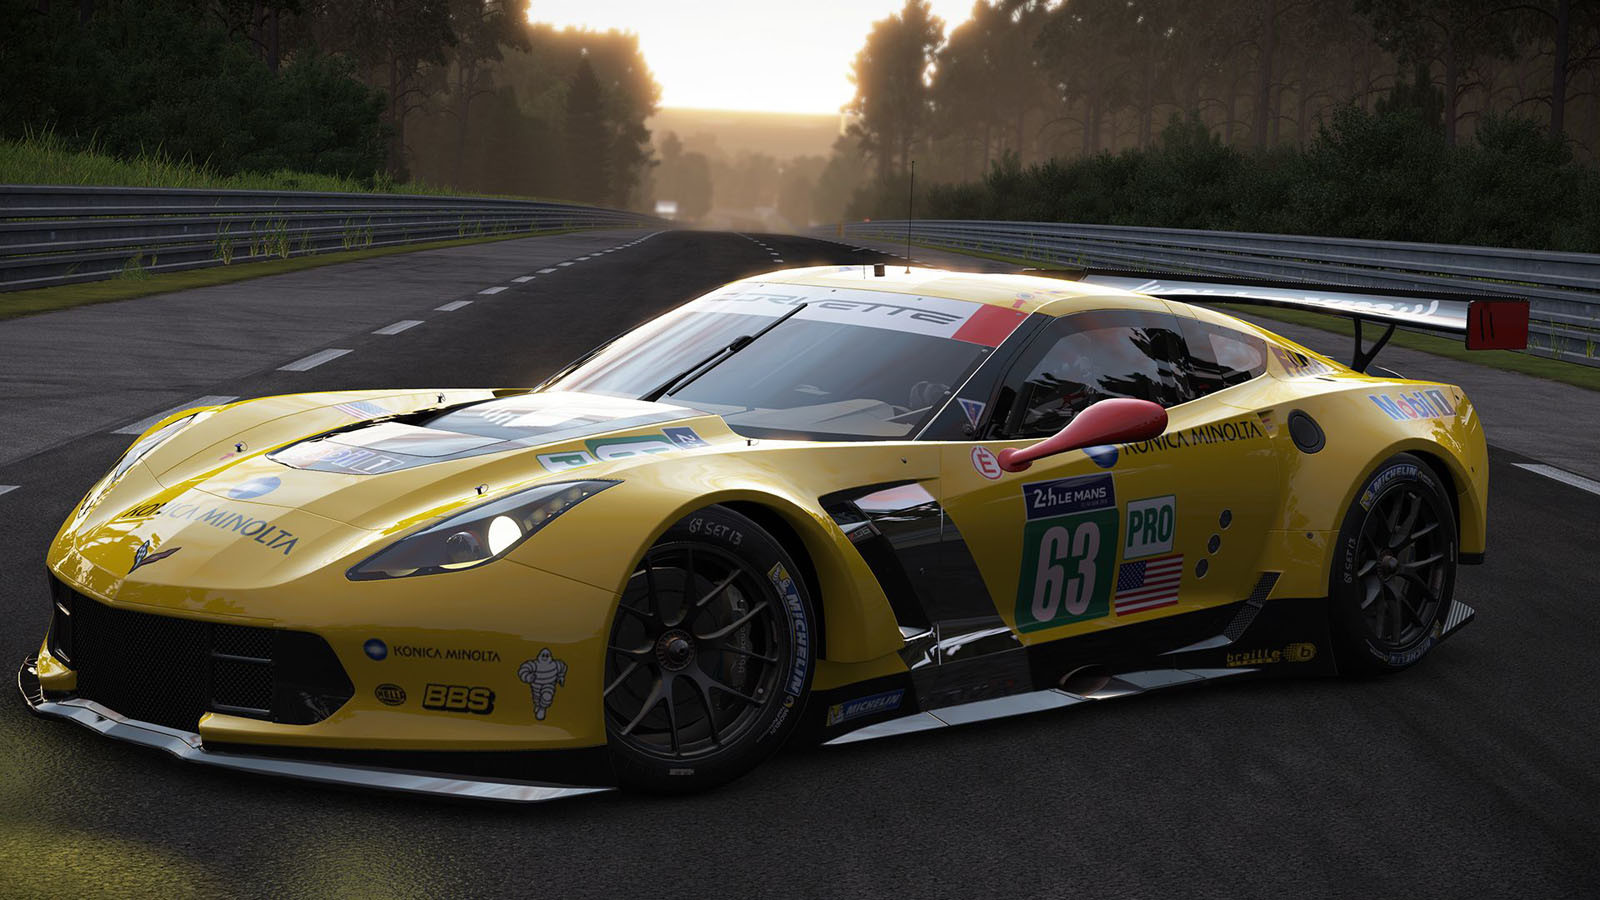 Project CARS: Game Of The Year Edition [Steam CD Key] for PC - Buy now